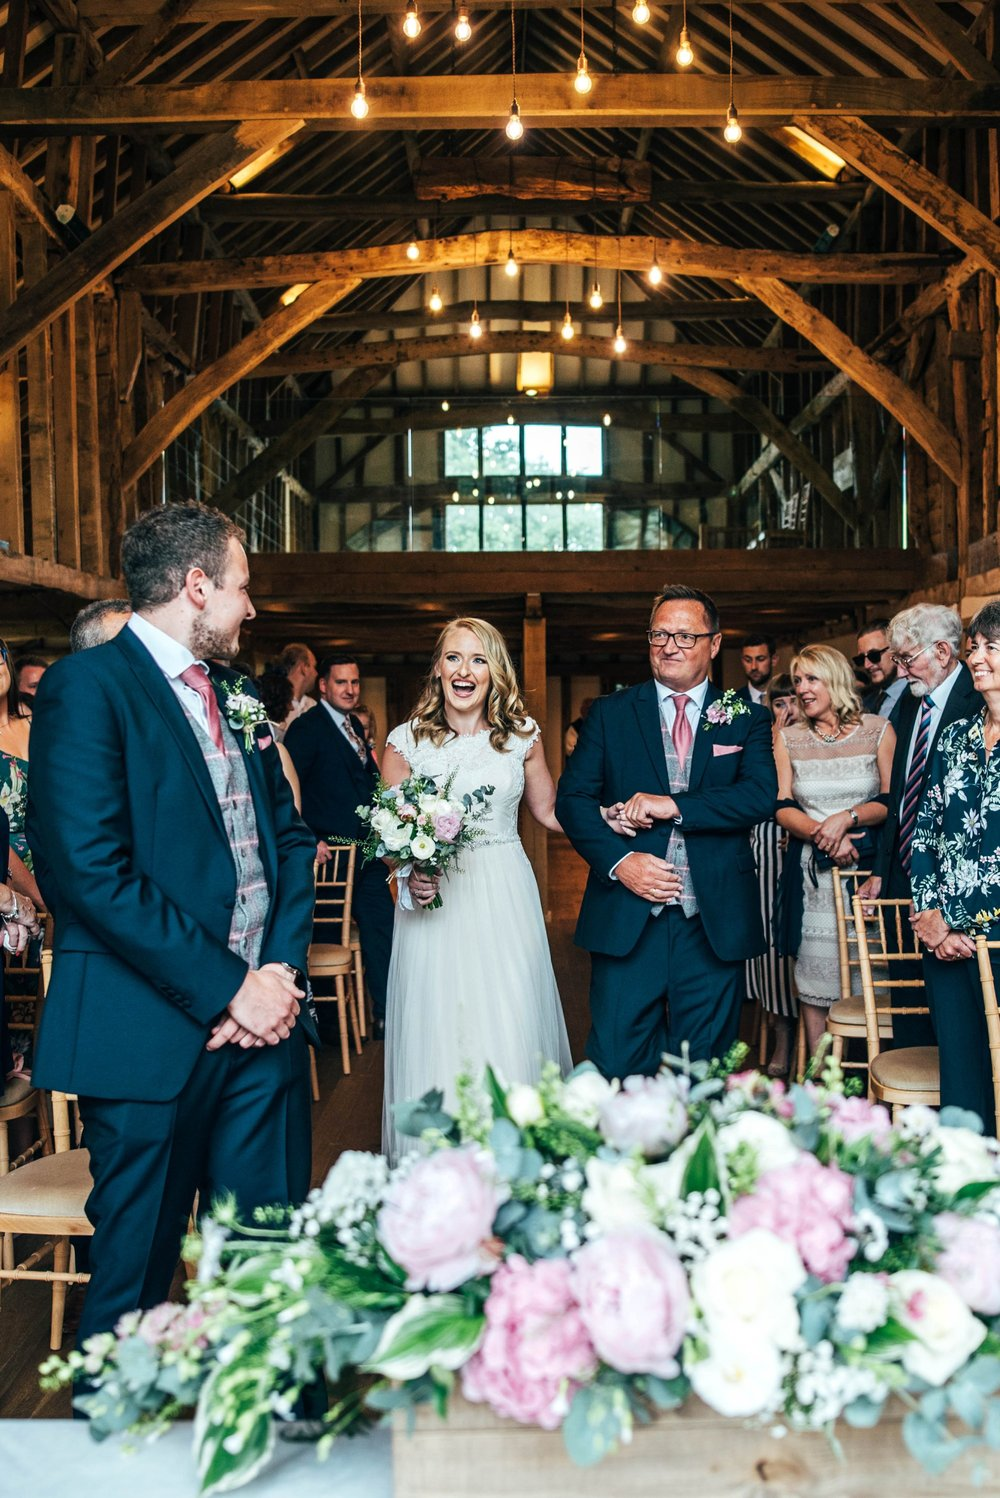 Blush Pink Spring Barn Wedding Blake Hall Essex. Bride wears Maggie Sotterro. Essex Documentary Wedding Photographer